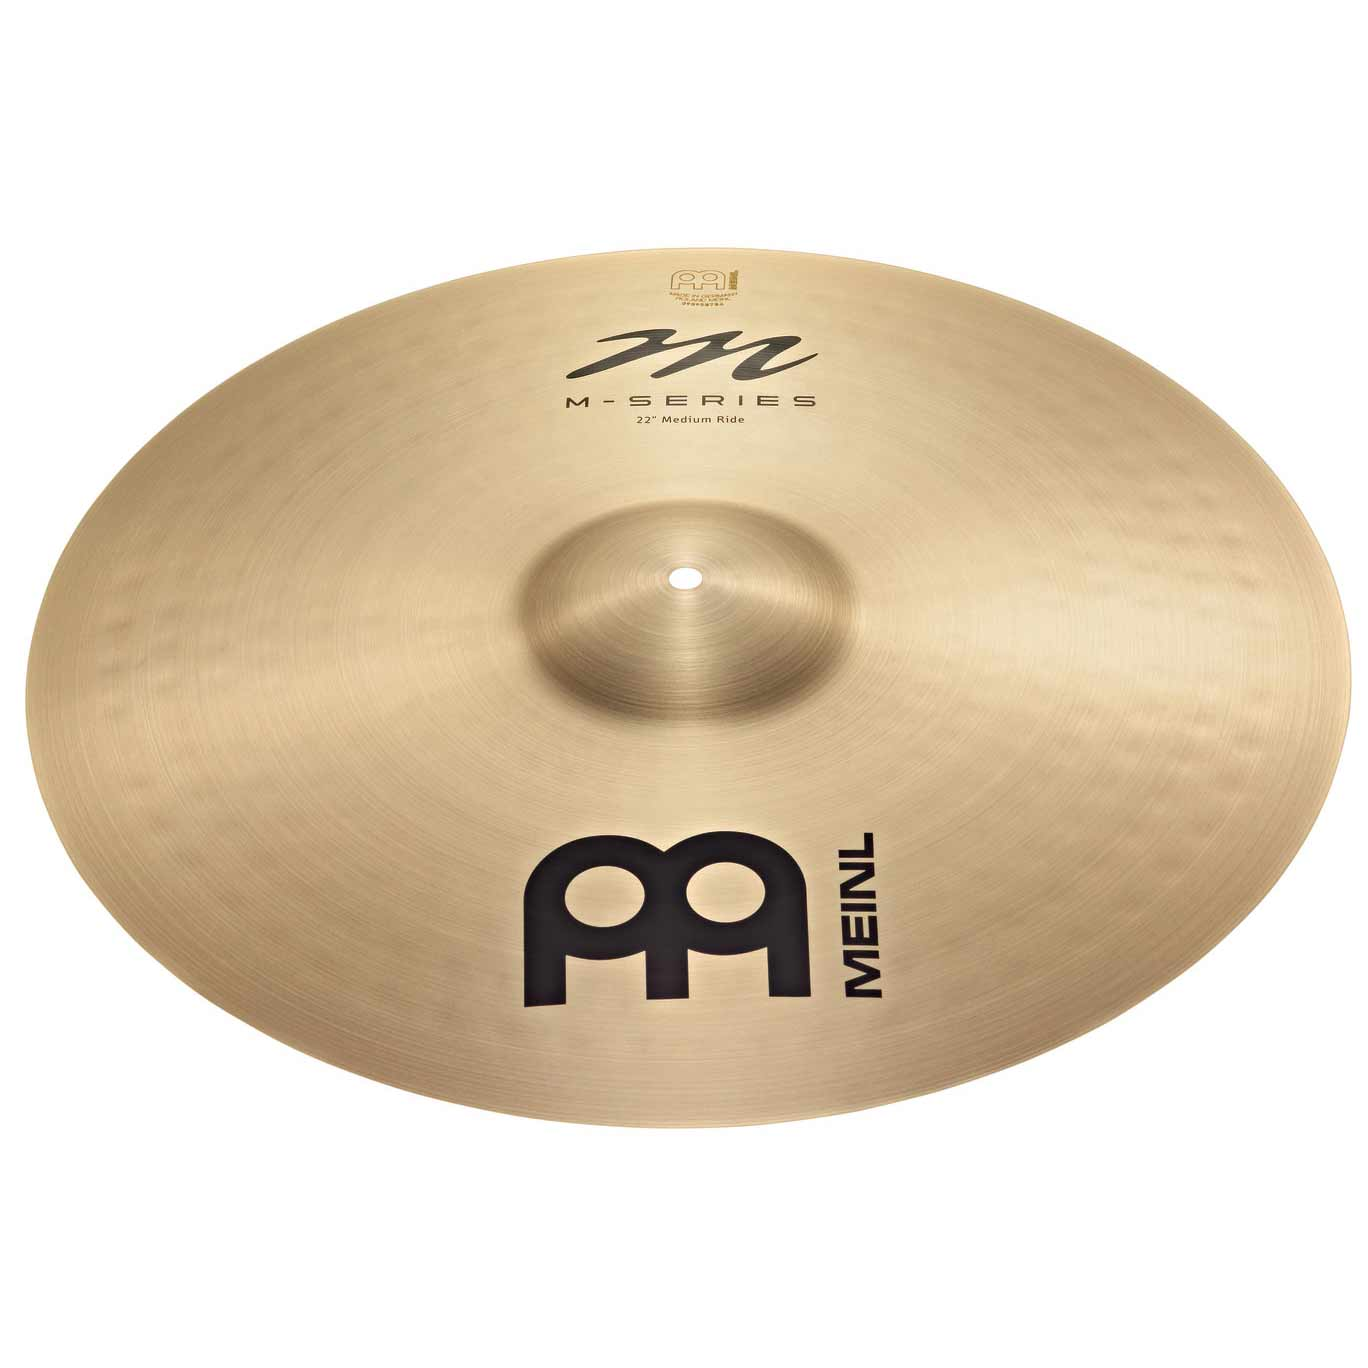 "Meinl 22"" M Series Medium Ride Cymbal"